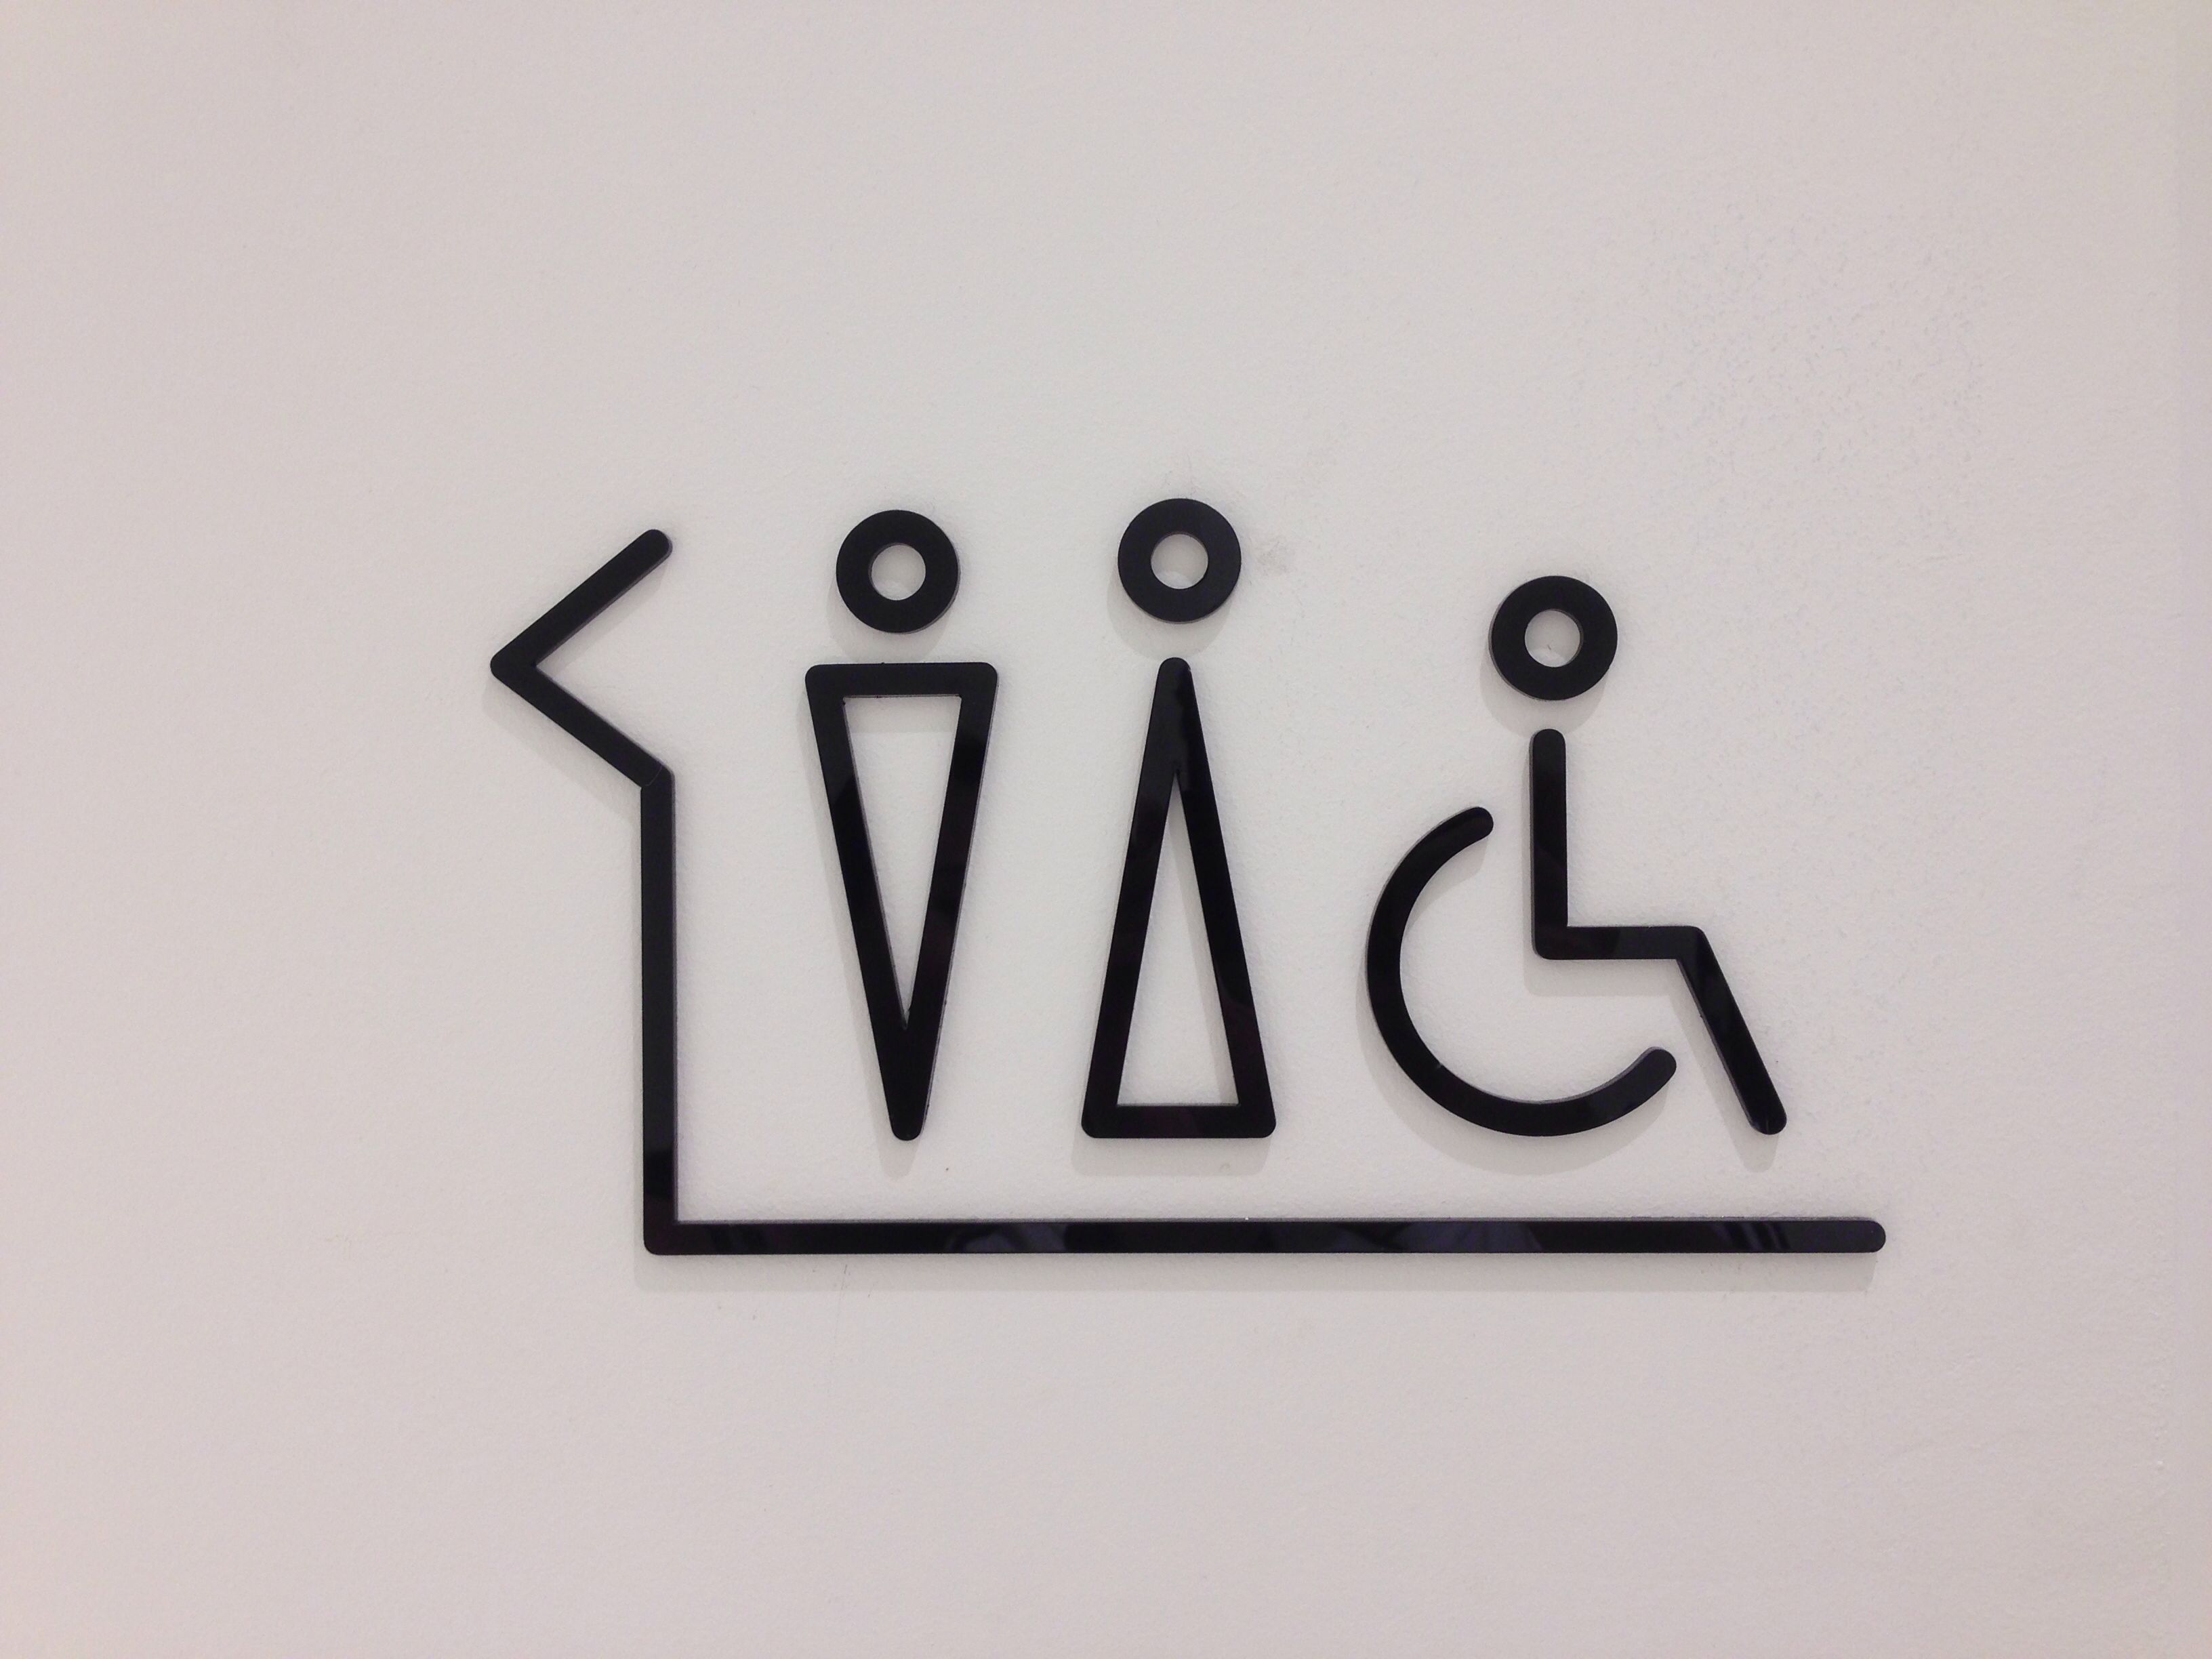 Girls bathroom sign outline - Toilet Sign